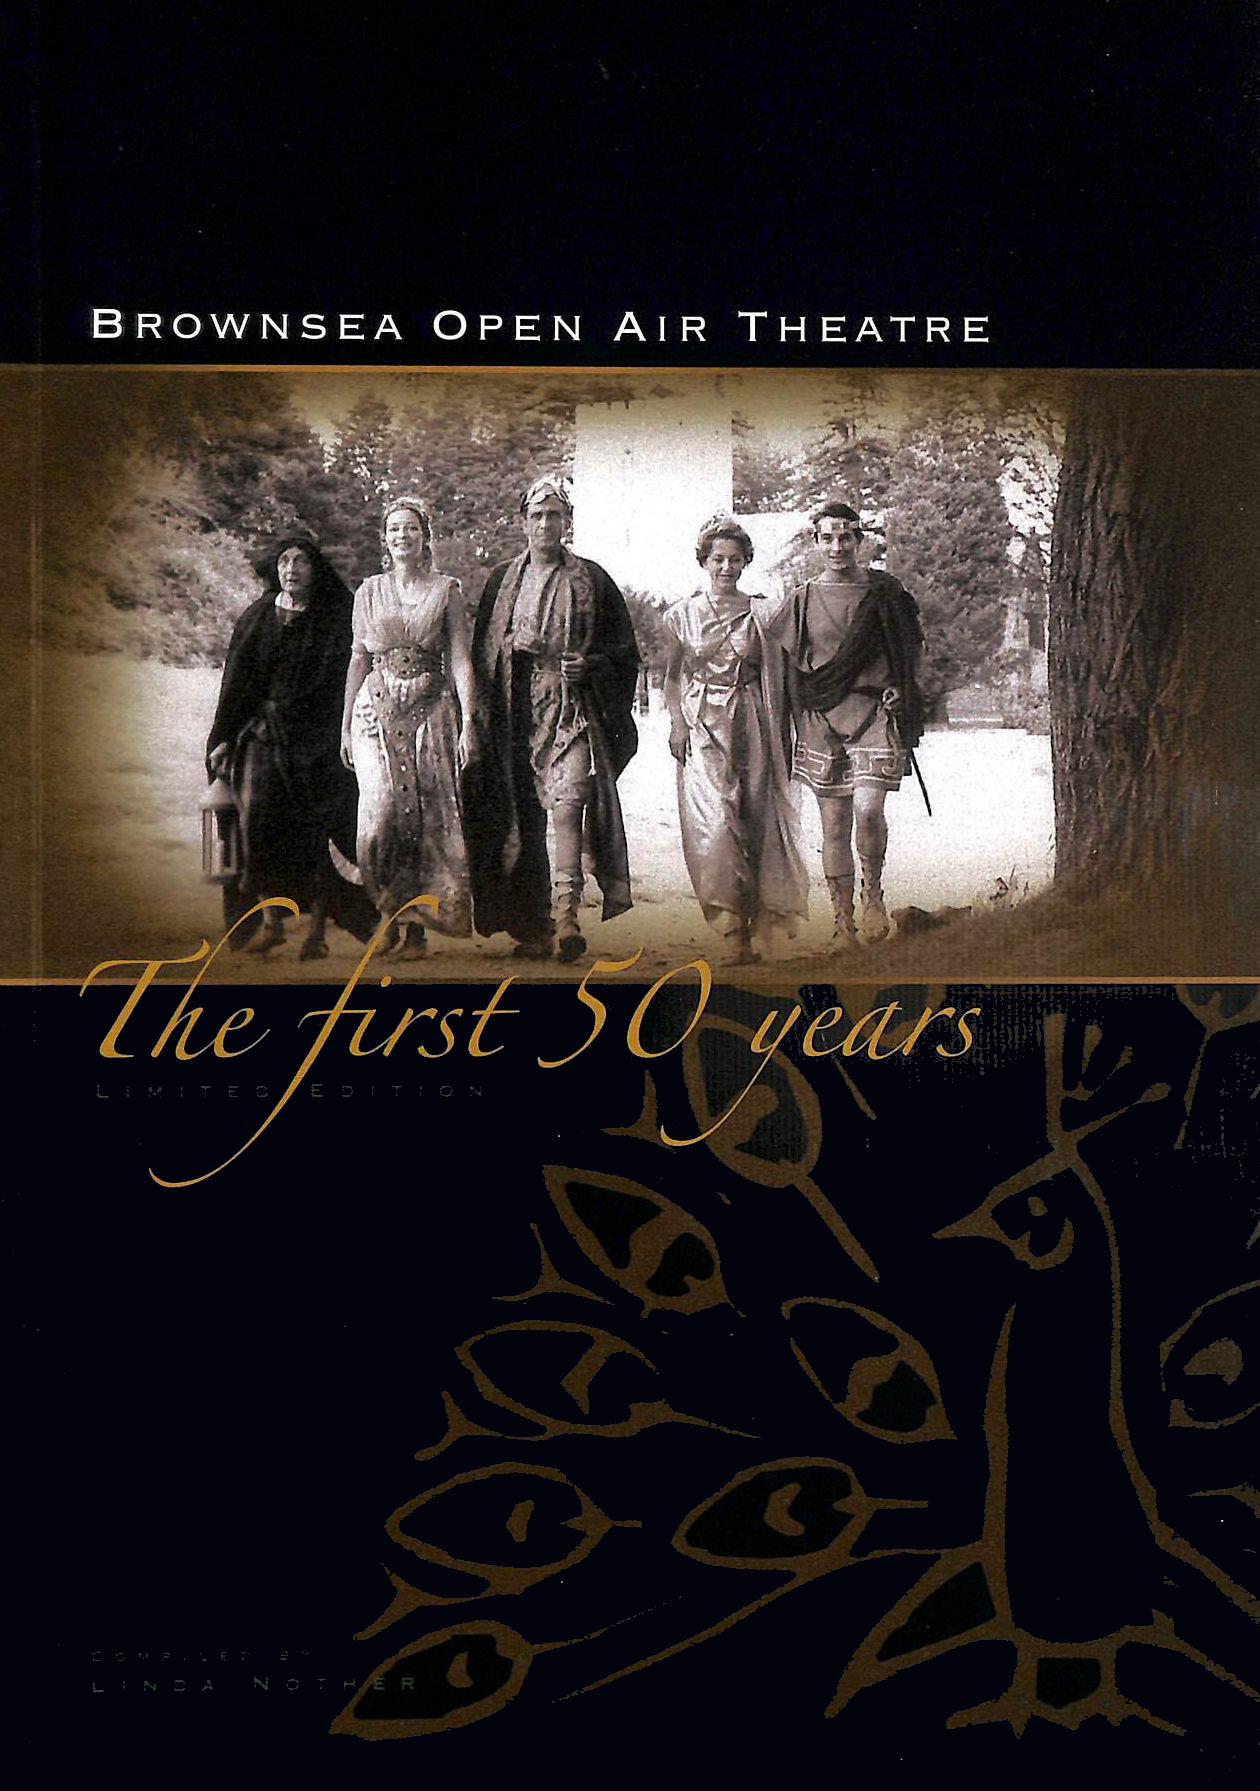 Image for Brownsea Open Air Theatre - the First 50 Years